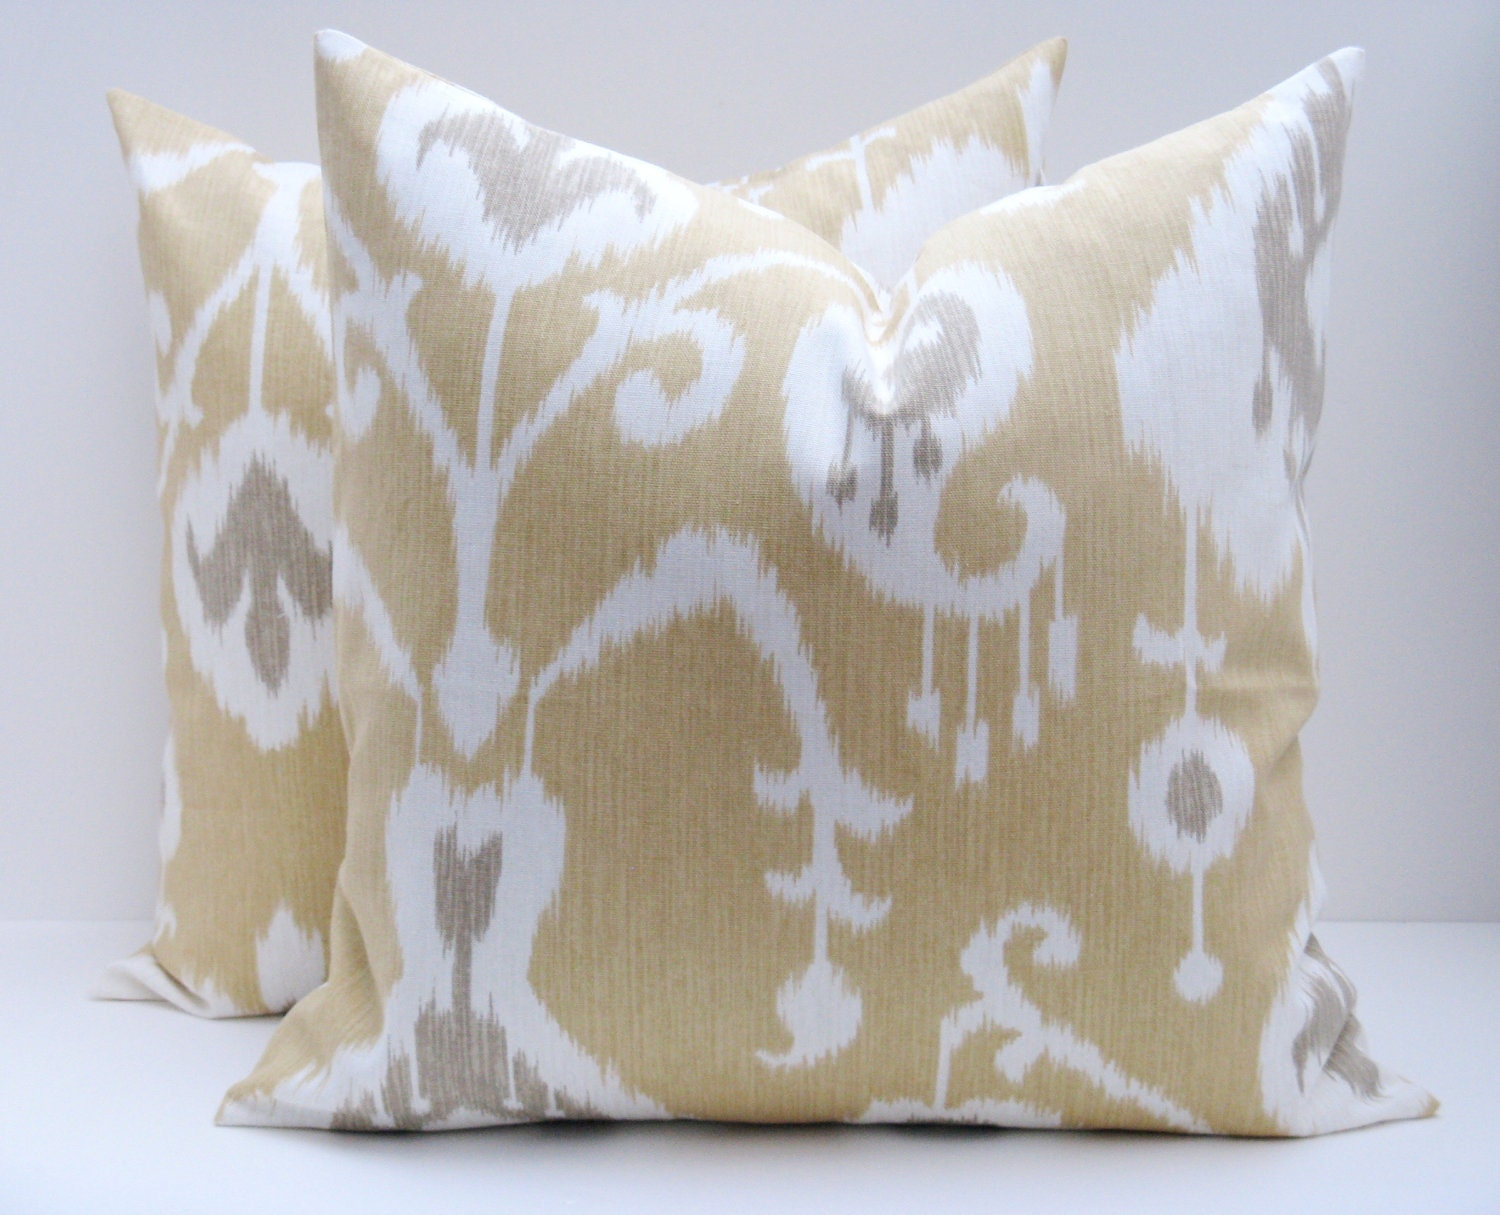 15 Inch Throw Pillow Covers : 15% Off Sale IKAT PILLOW COVERS Throw Pillow Sets 20x20 inch